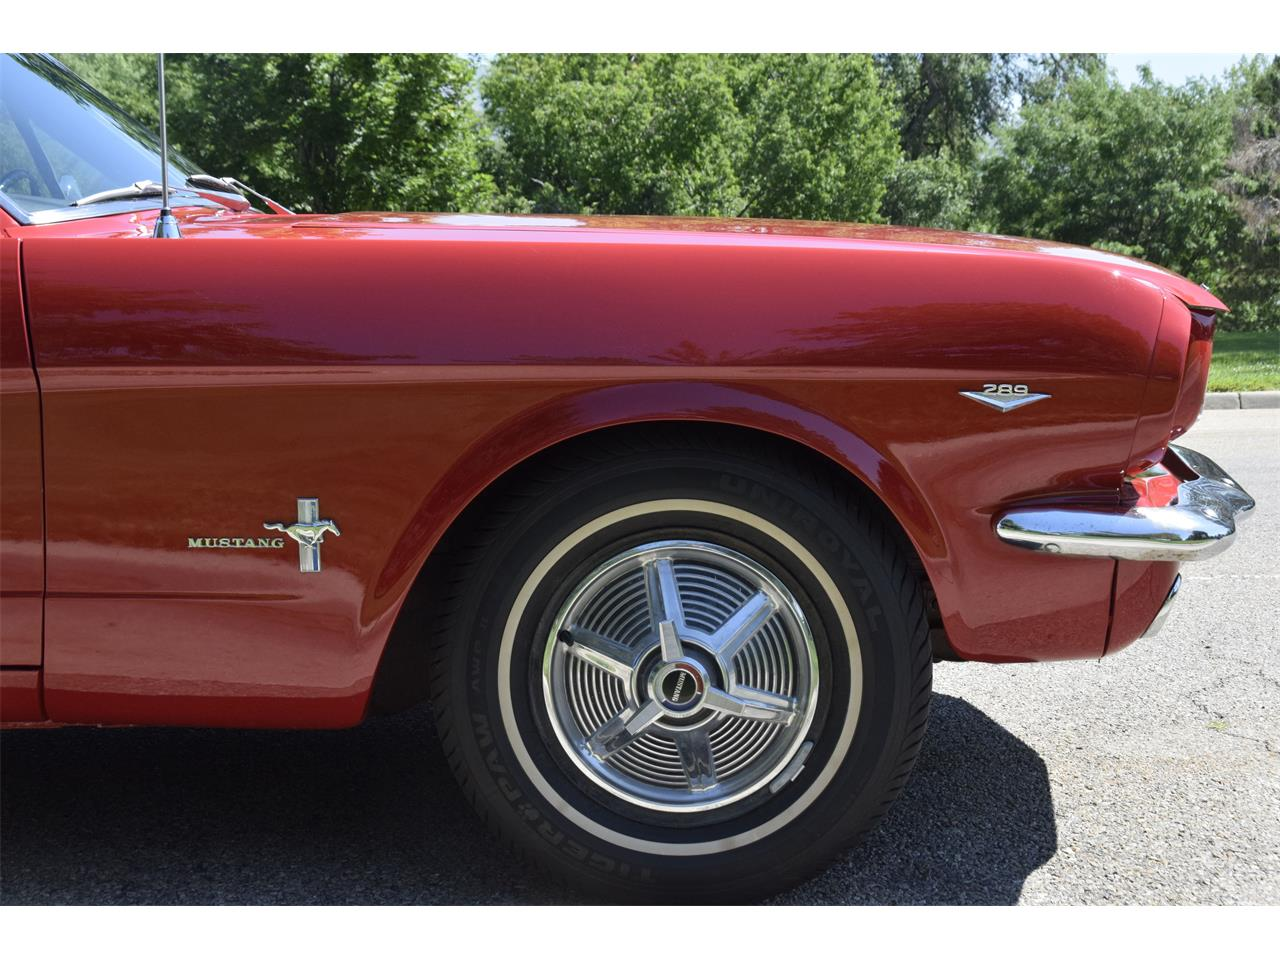 Large Picture of '66 Mustang located in Utah - $23,900.00 Offered by a Private Seller - QPZ1